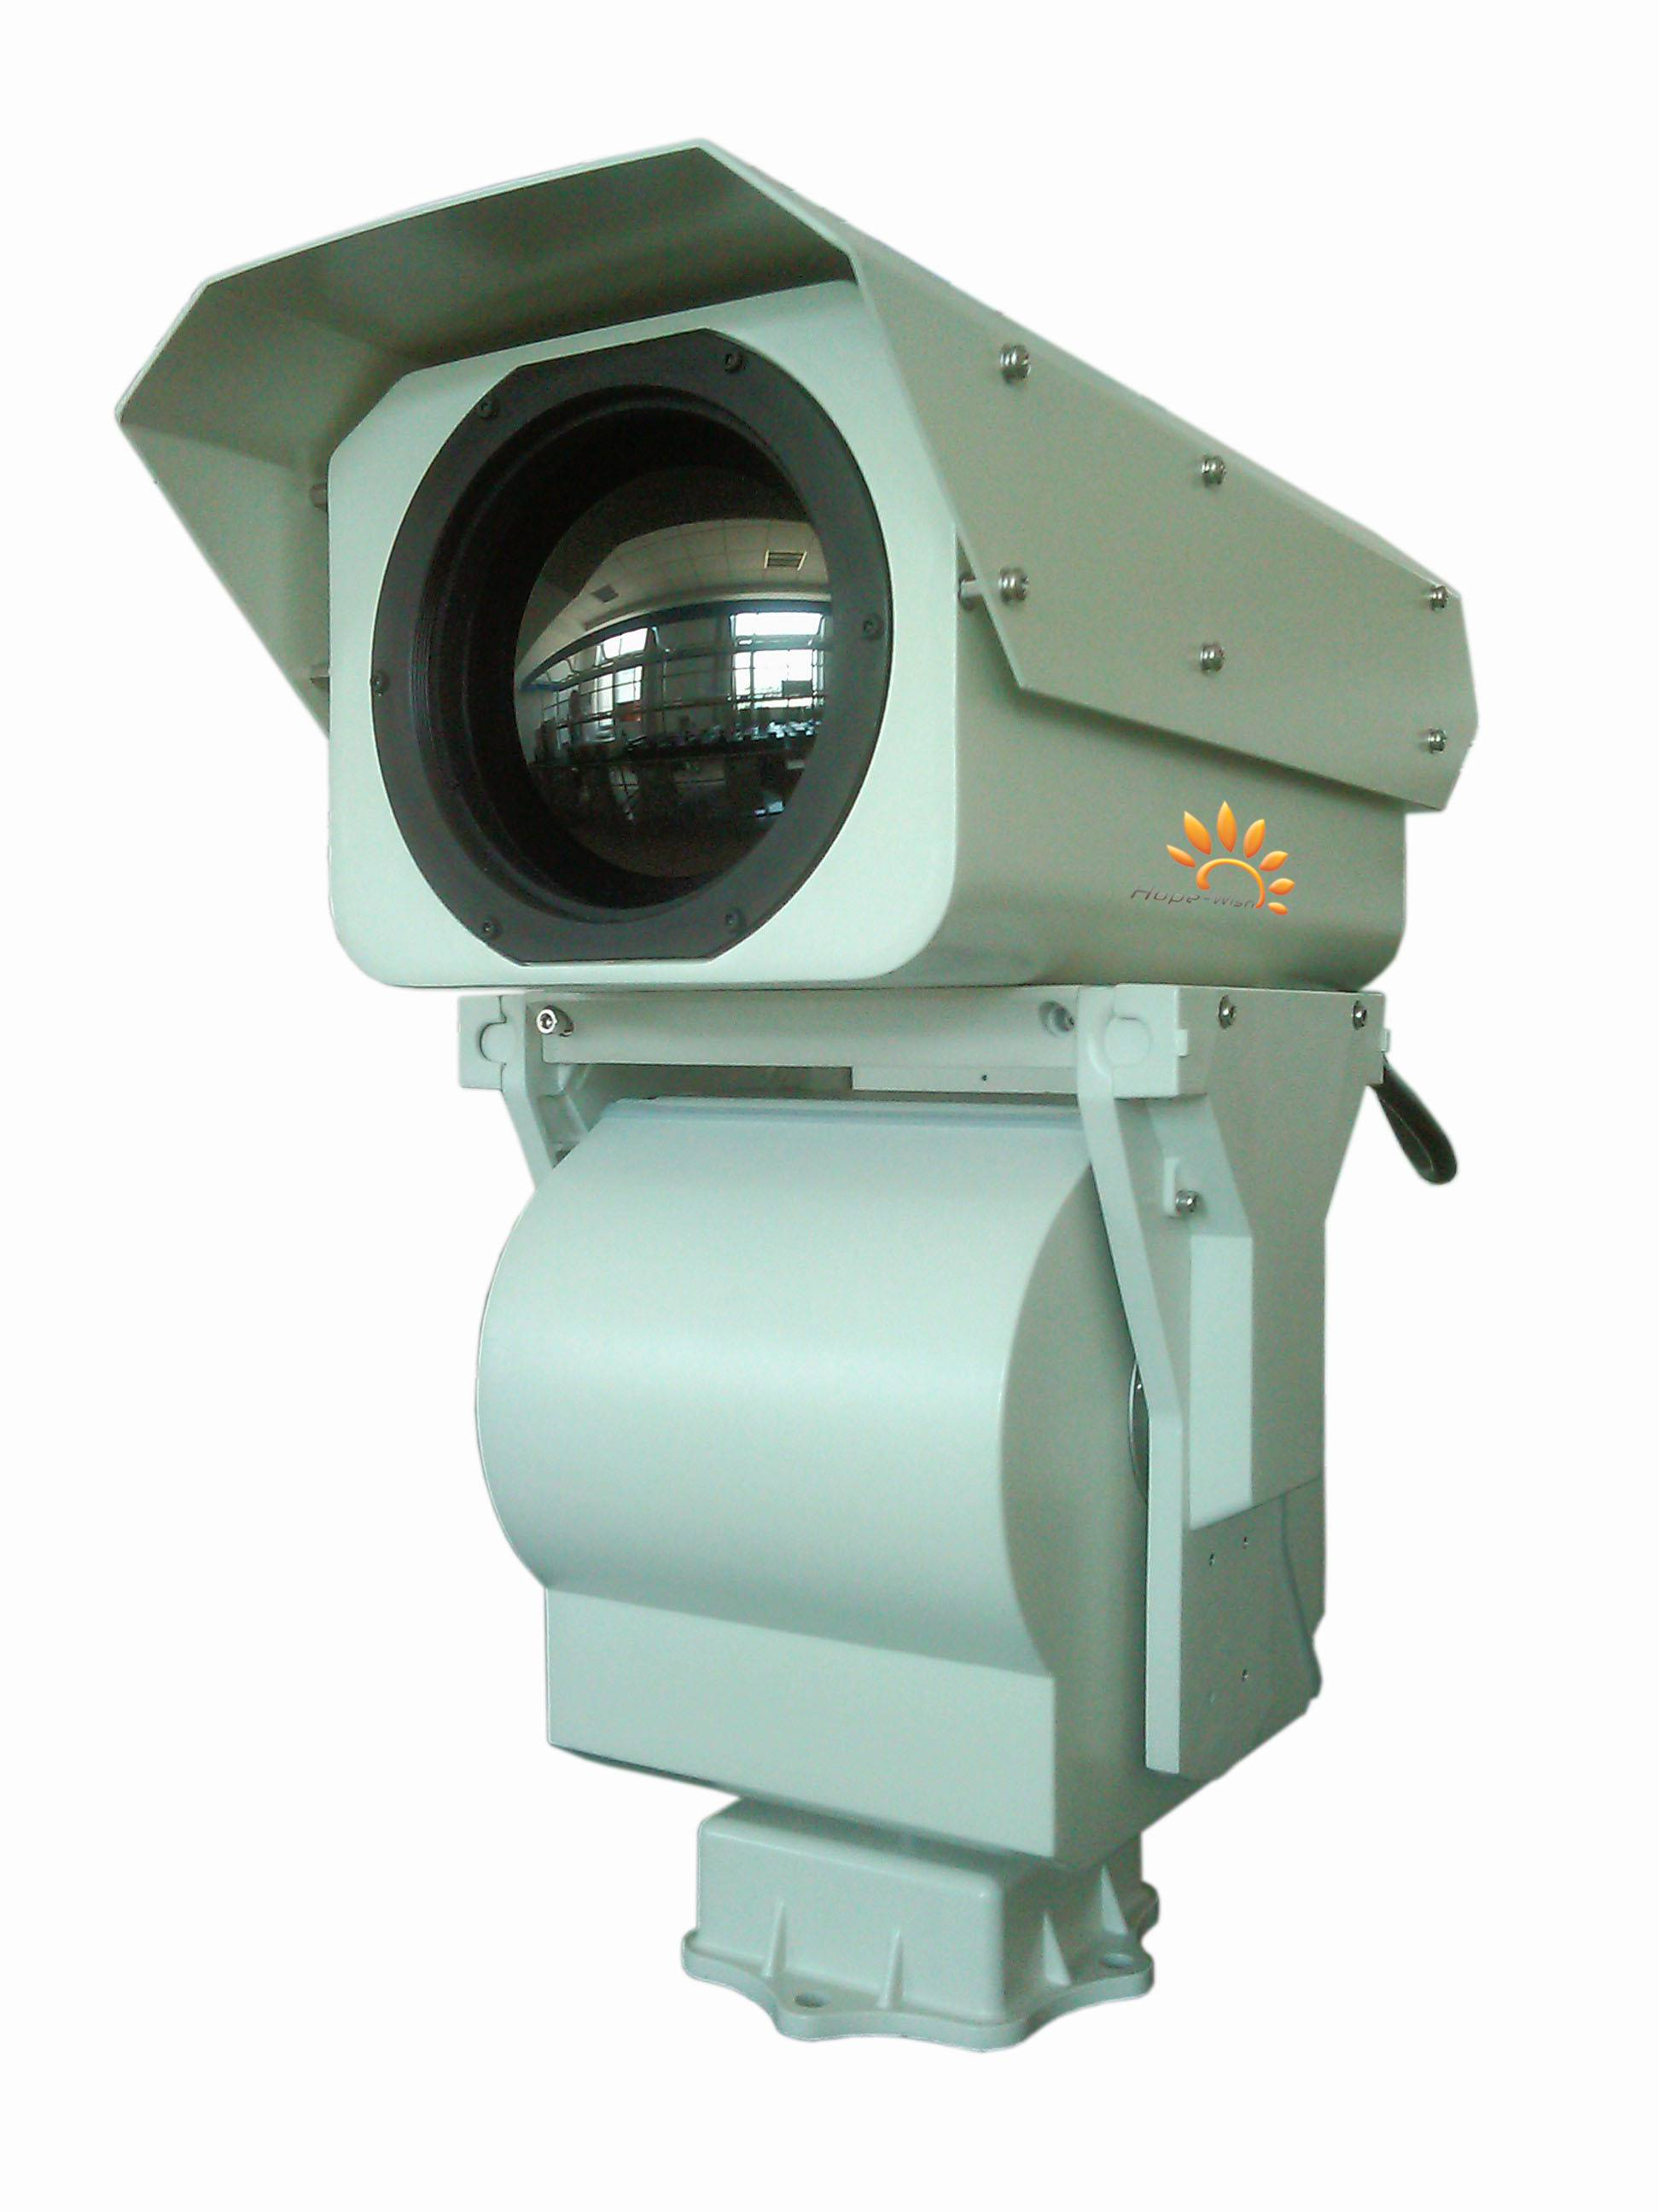 Zoom Thermal Camera (16400detection for vehicle)